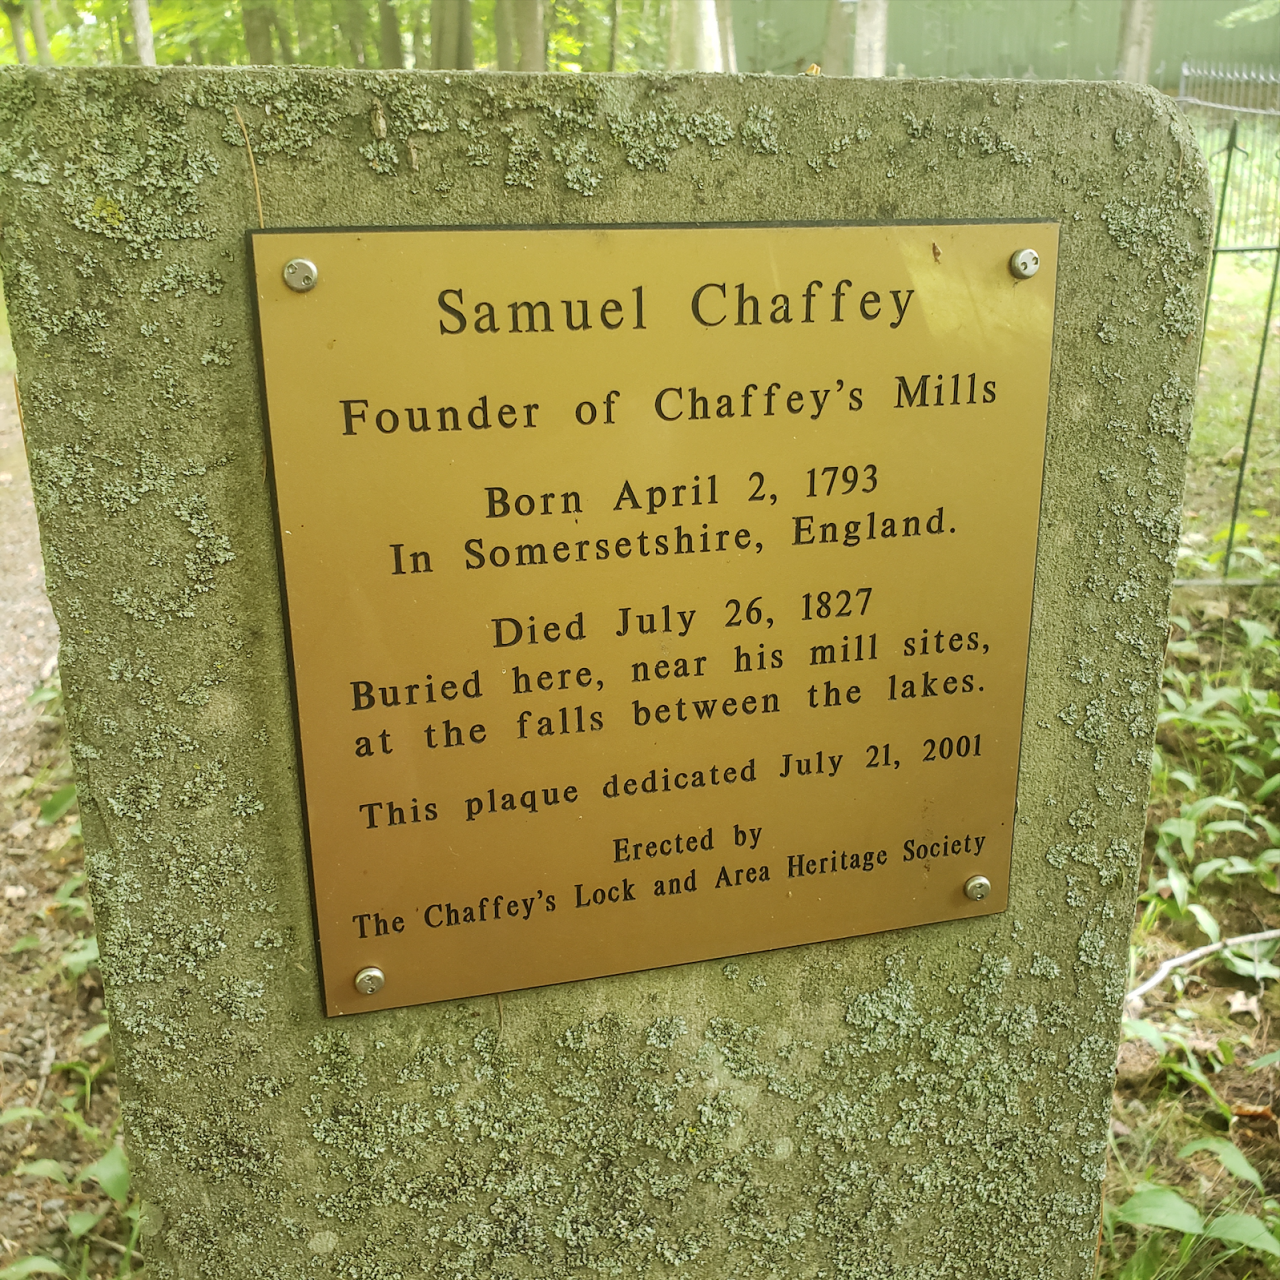 Chaffey's Mill/Lock - Aug 30 2020 - 17.png